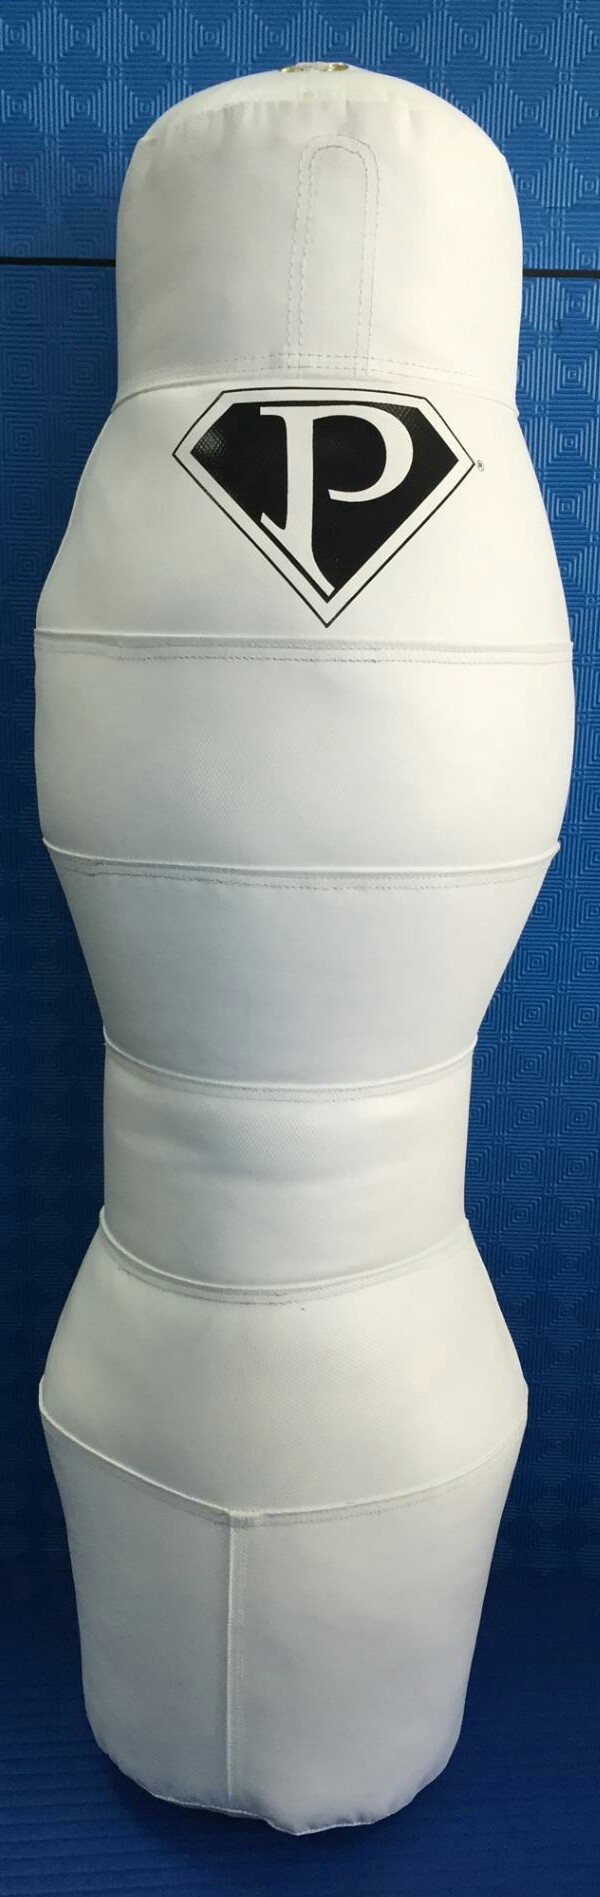 PROFESSIONAL THROWING DUMMY MADE IN USA